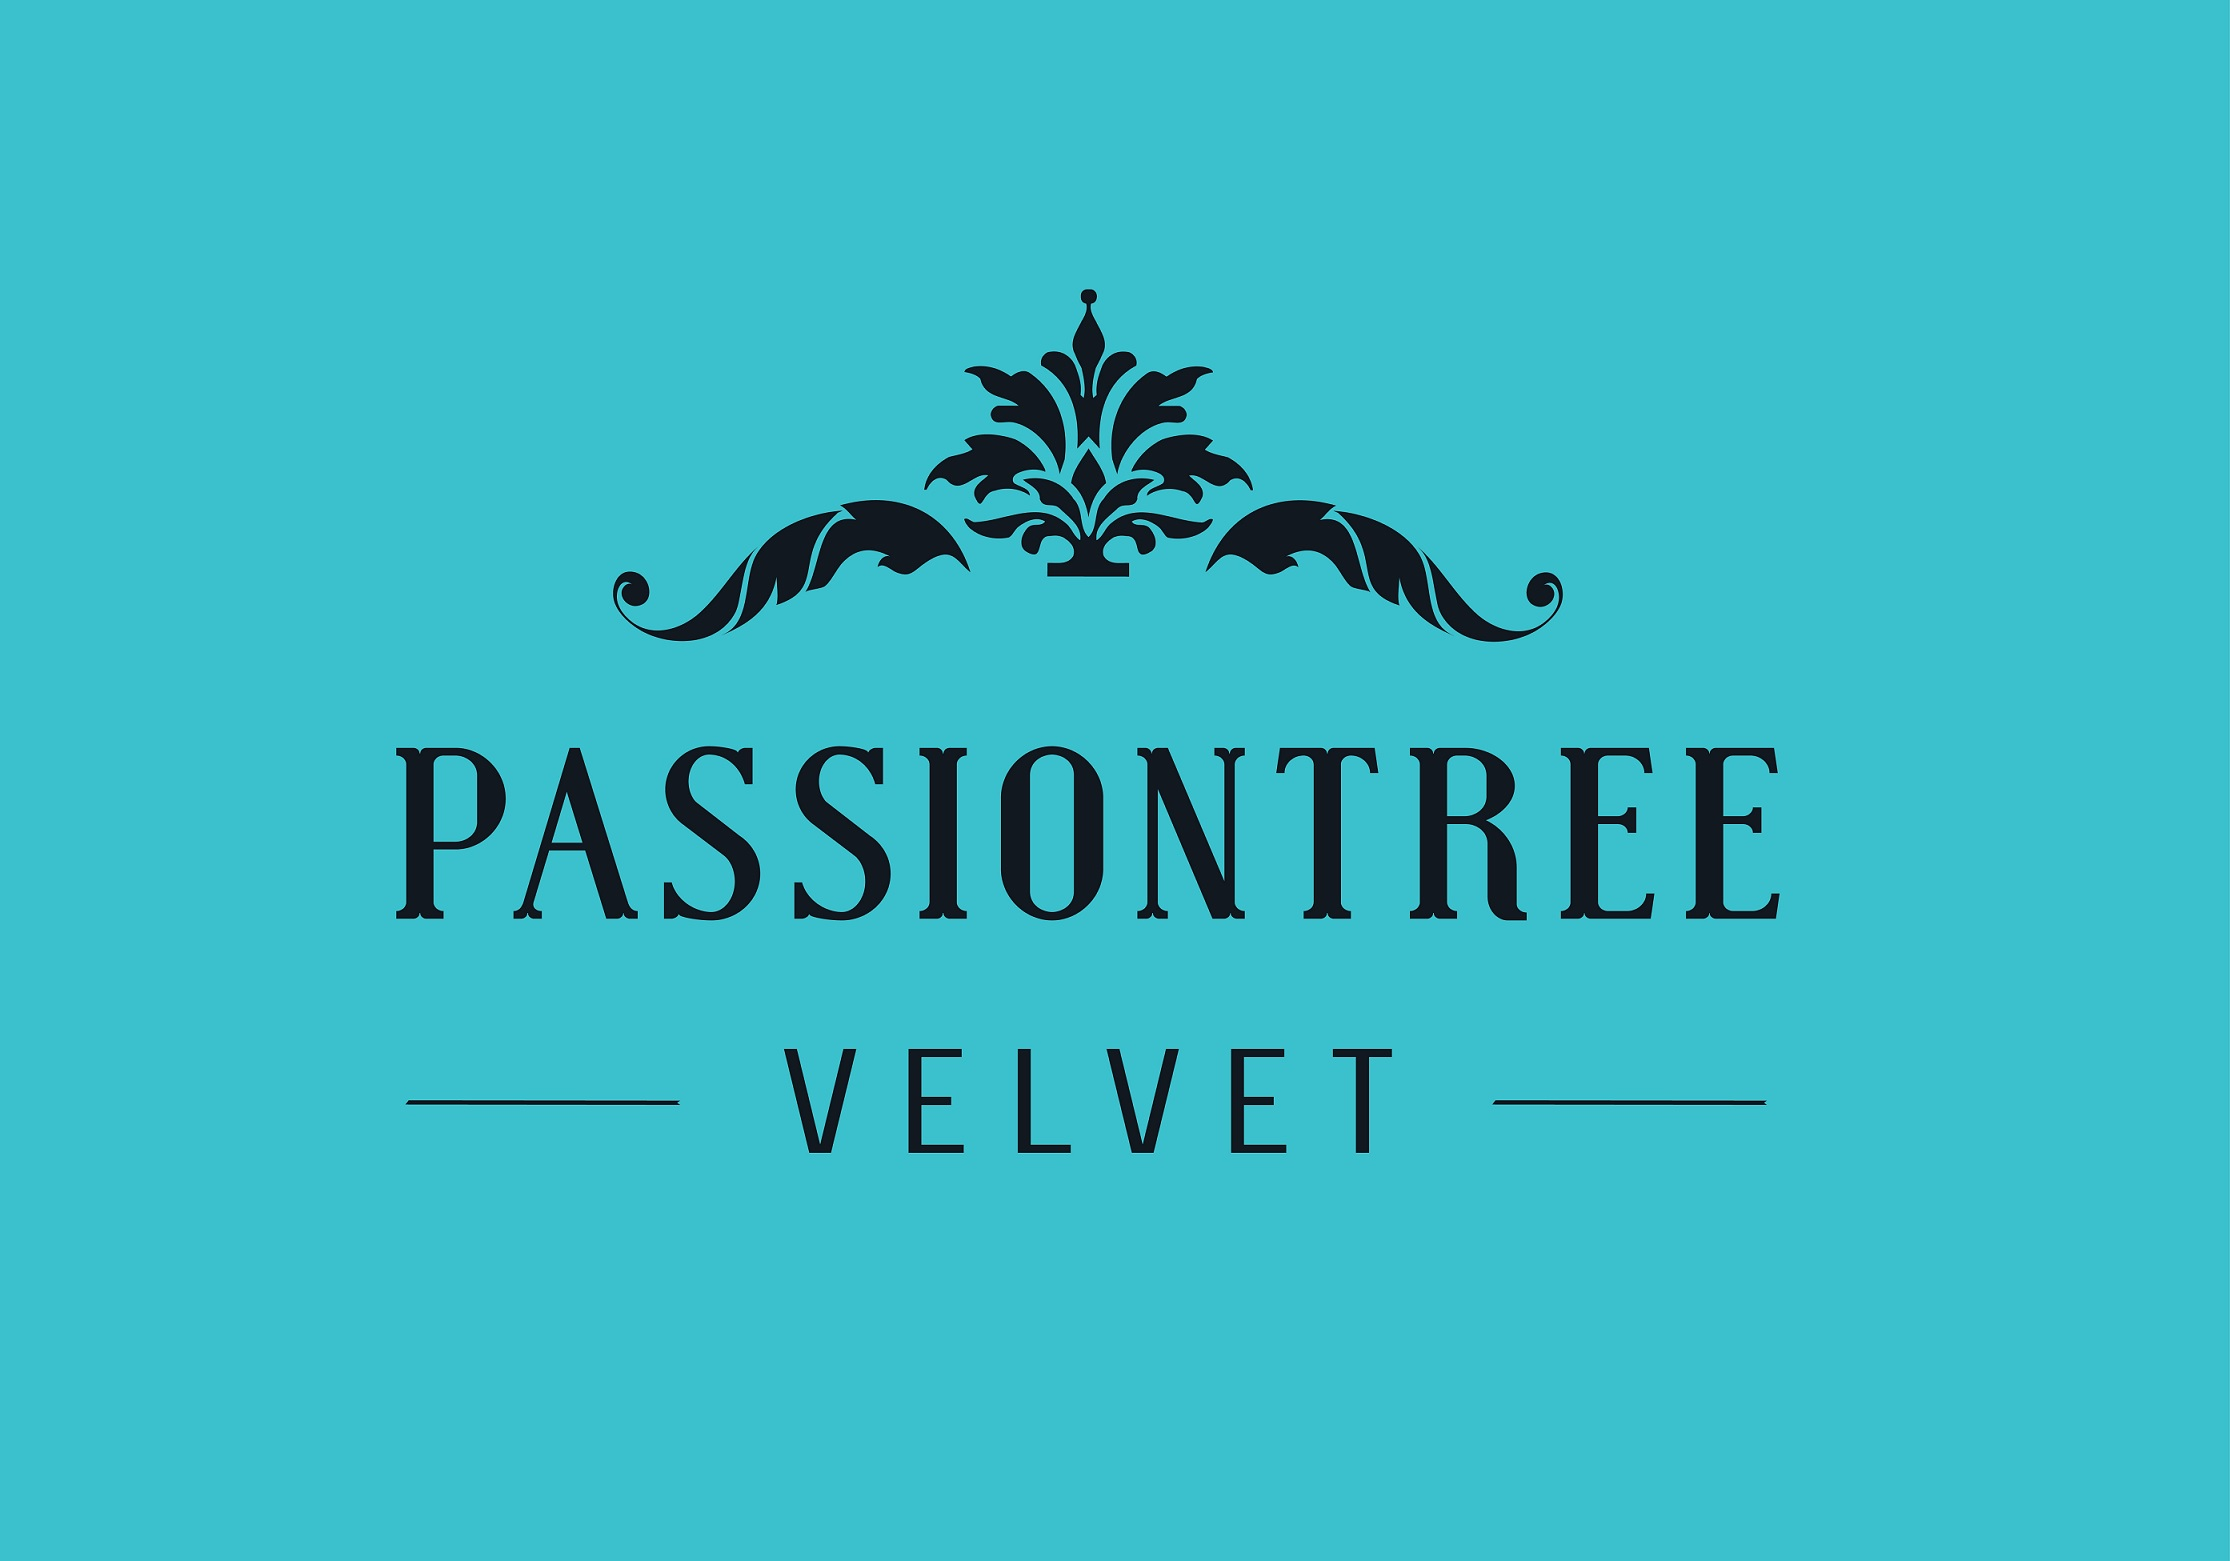 Passiontree Velvet - Canberra Area Developer Franchisee